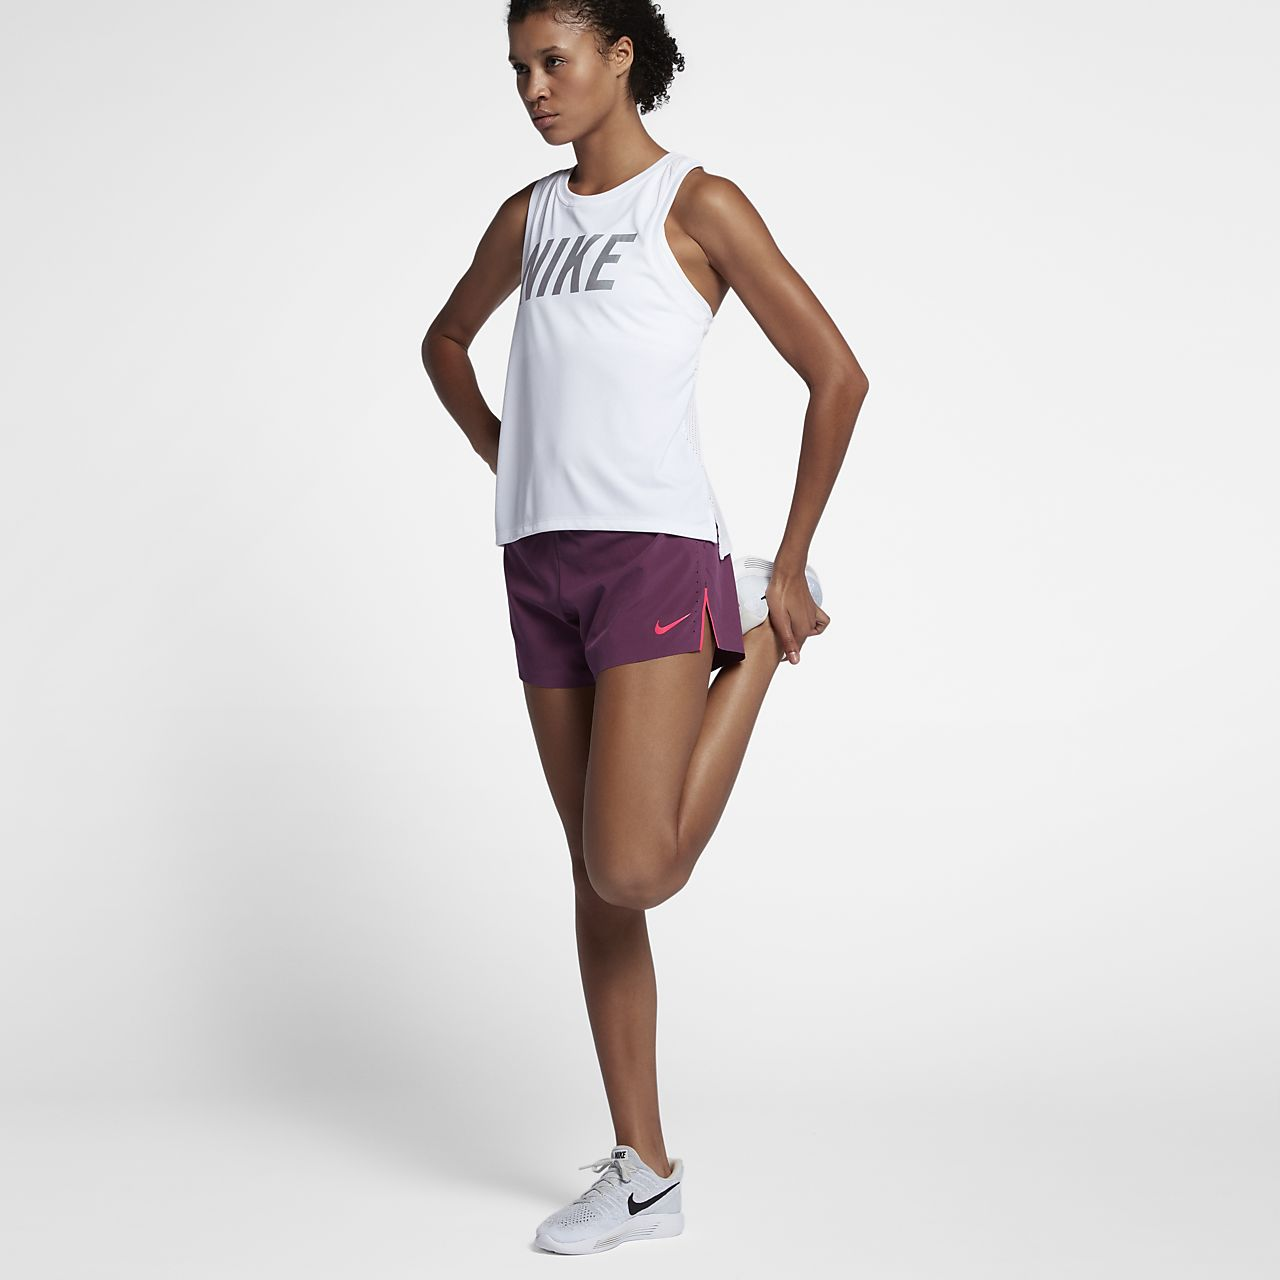 Running Shorts Nike AeroSwift Women's 4\